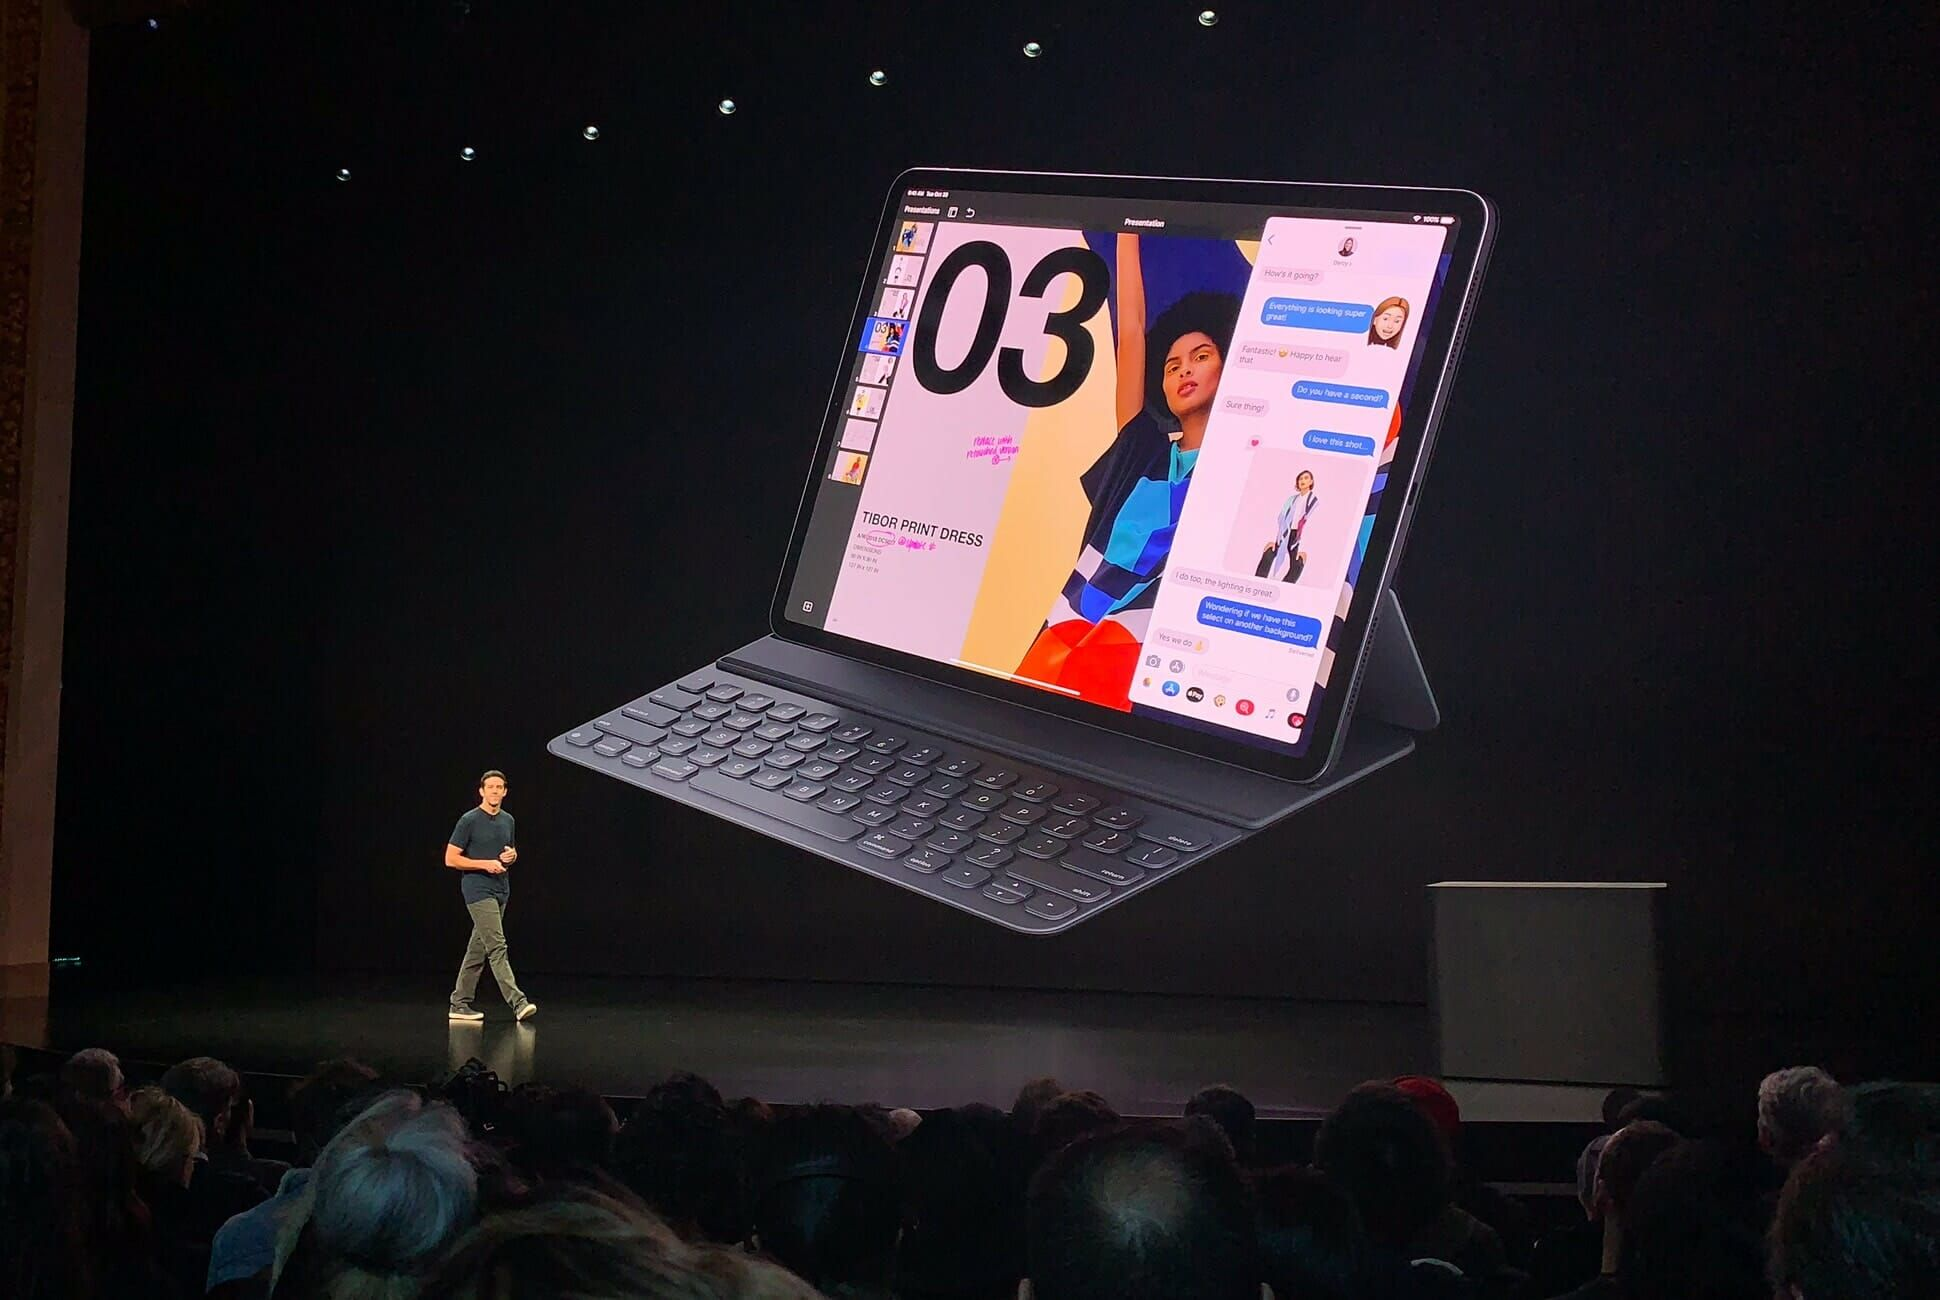 Apple-Event-NYC-2018-iPad-Pros-gear-patrol-slide-5